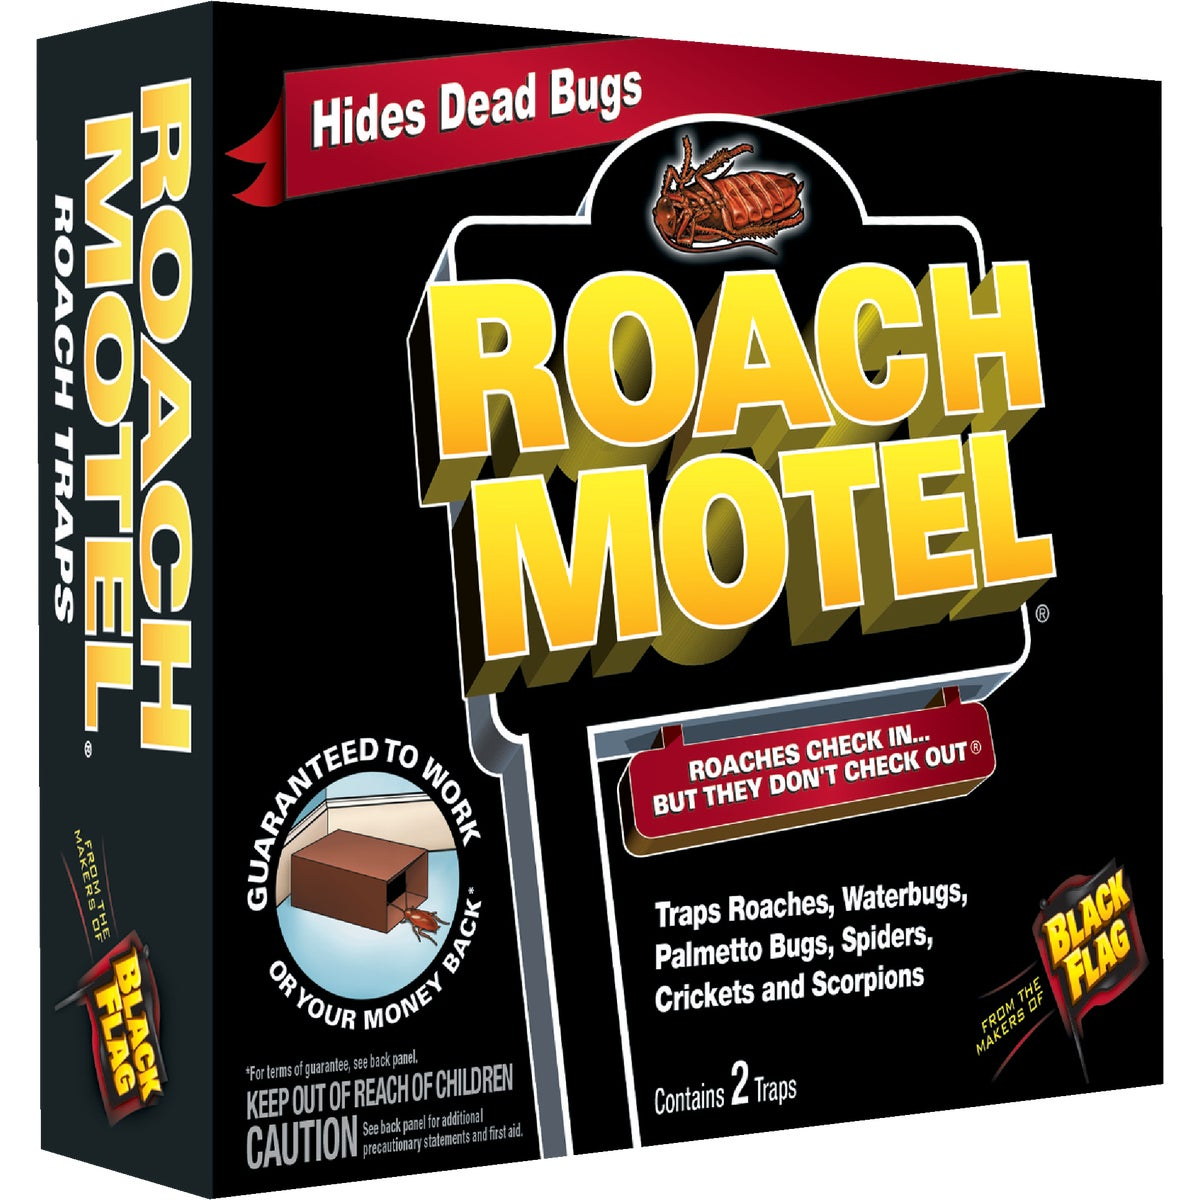 2PK ROACH BAIT TRAP - HG-11020 by United Industries Co